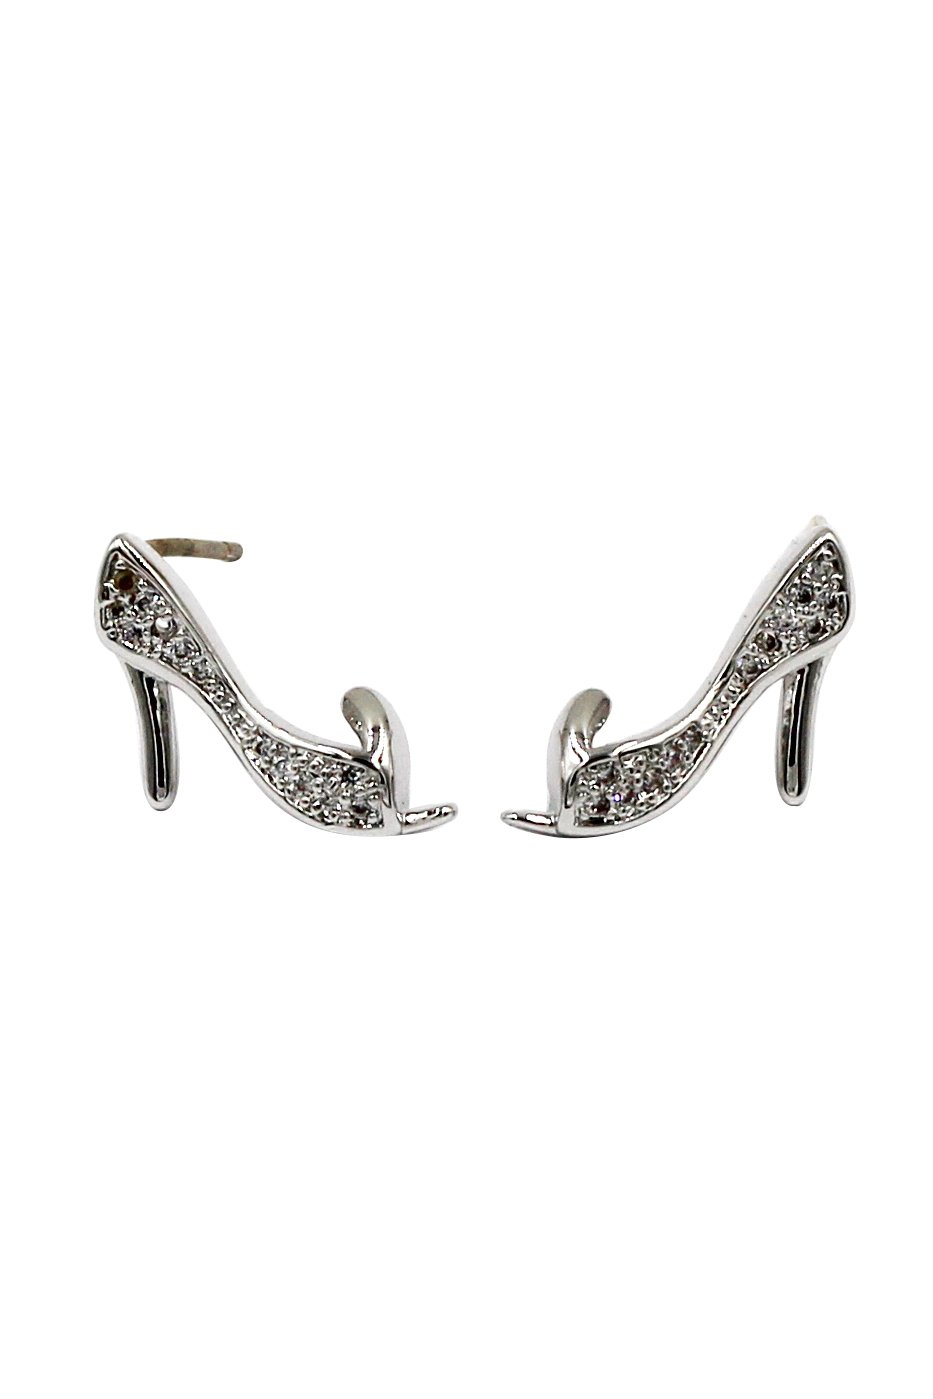 Mini heeled shoes crystal silver earrings